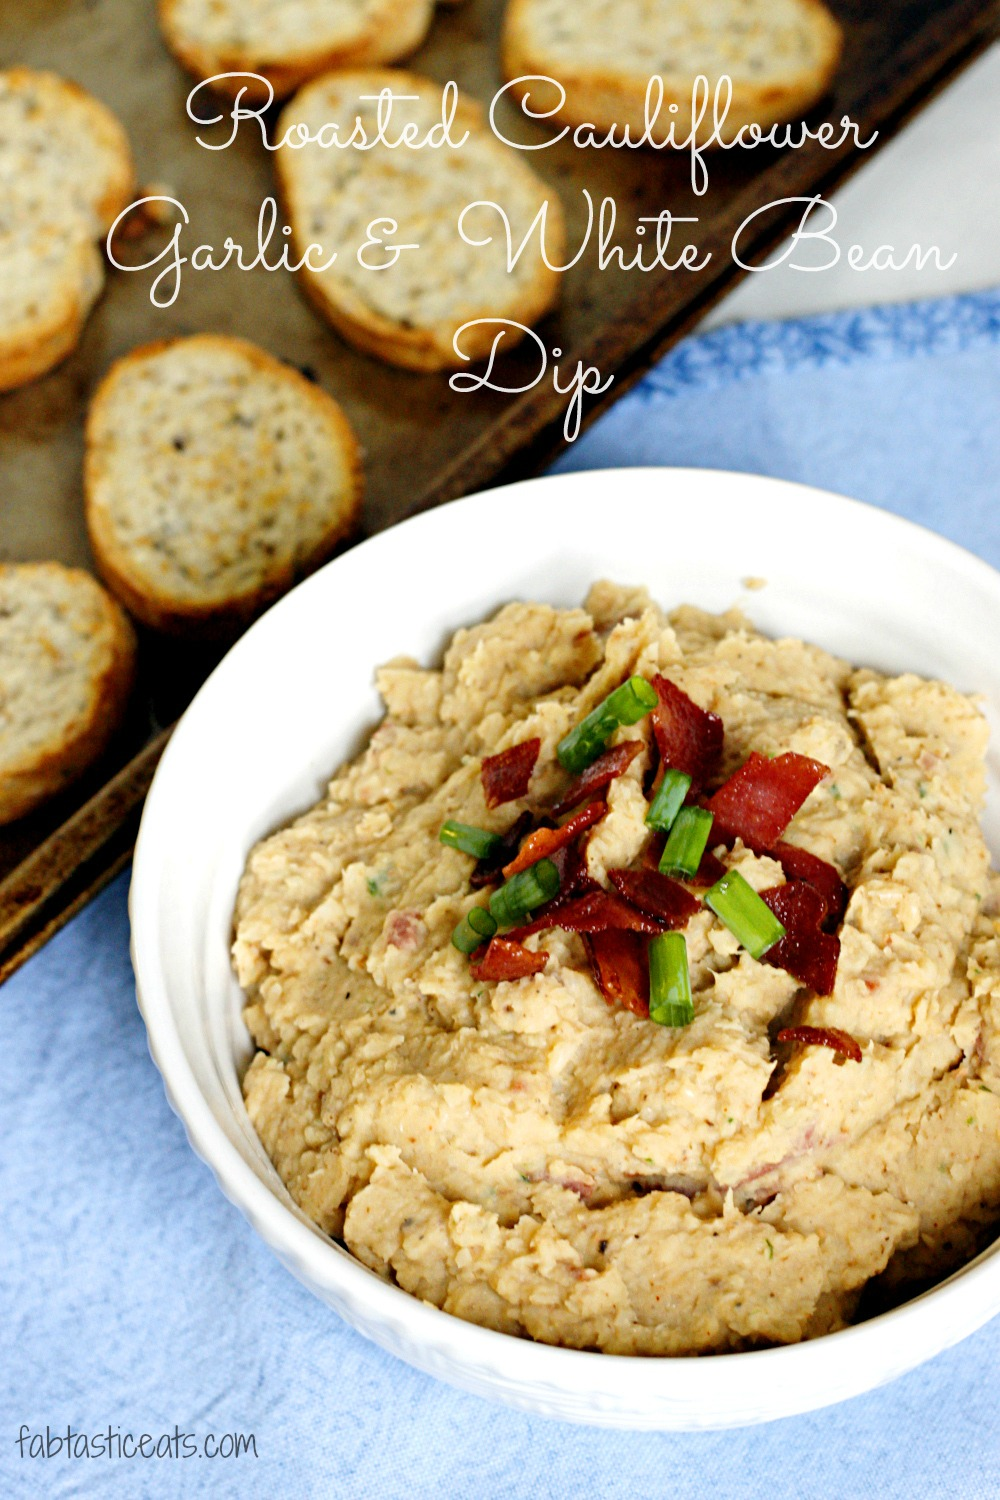 Roasted Cauliflower Garlic and White Bean Dip